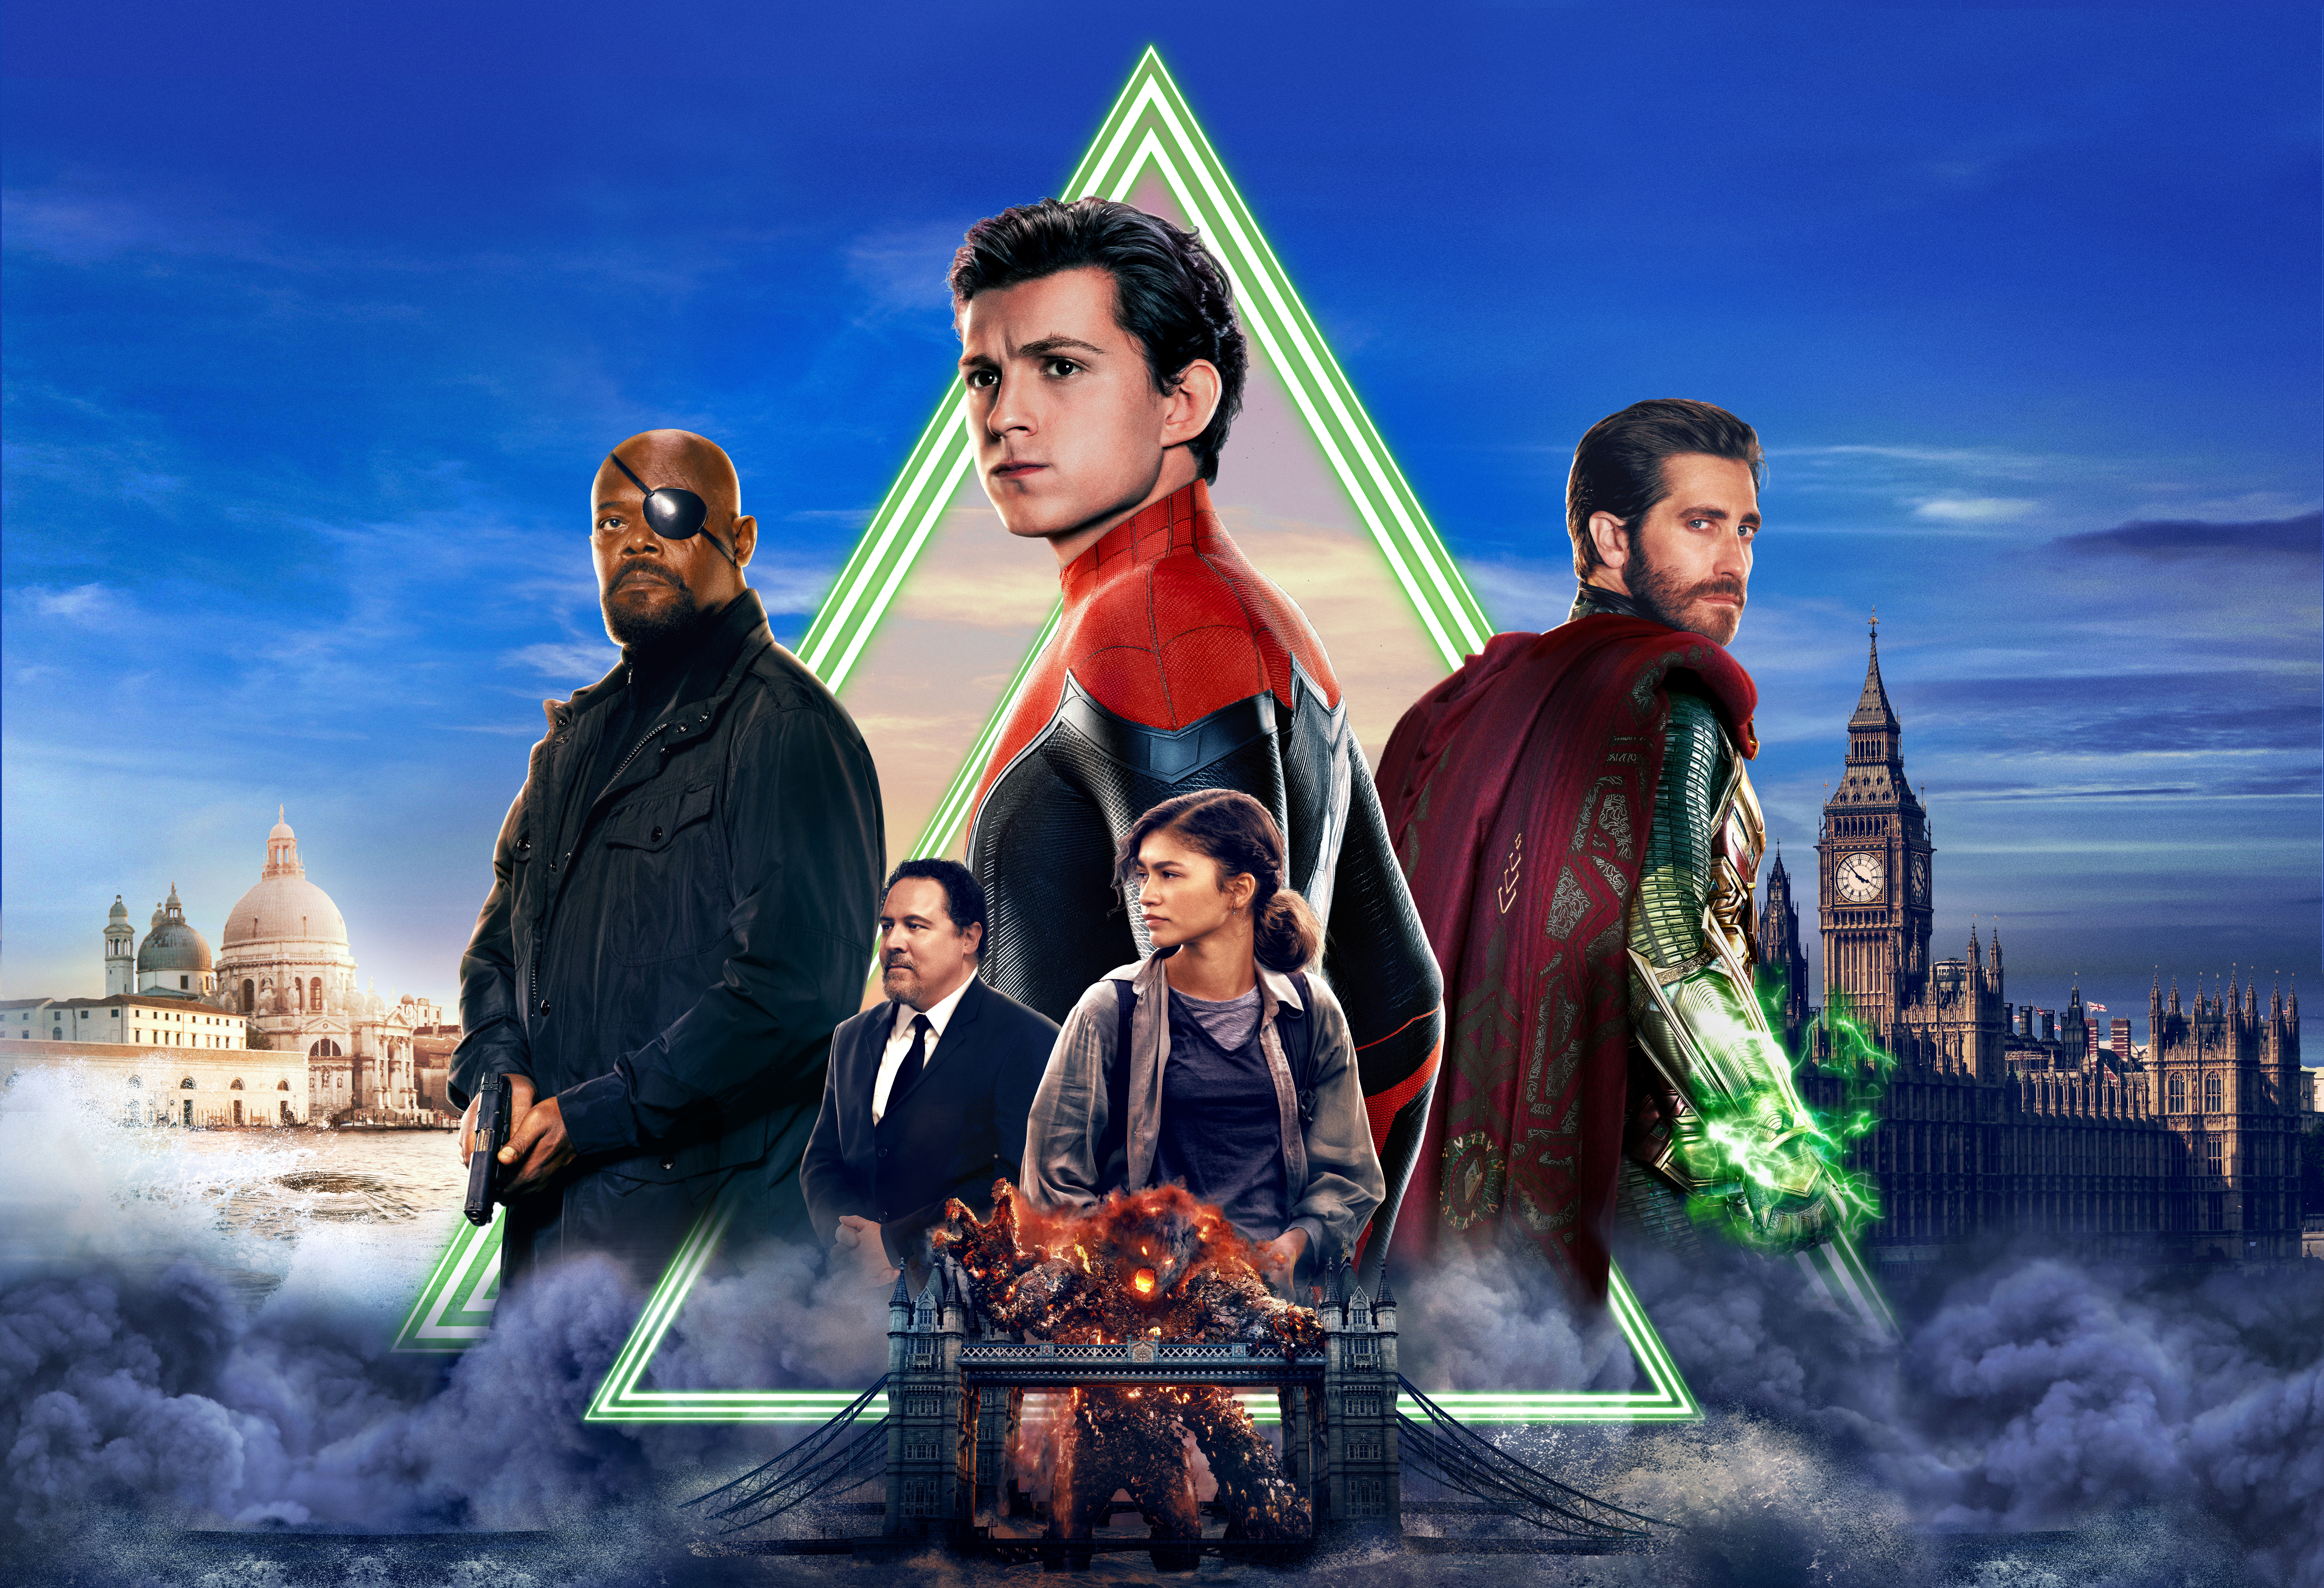 spiderman far from home movie 1575659381 - Spiderman Far From Home Movie -